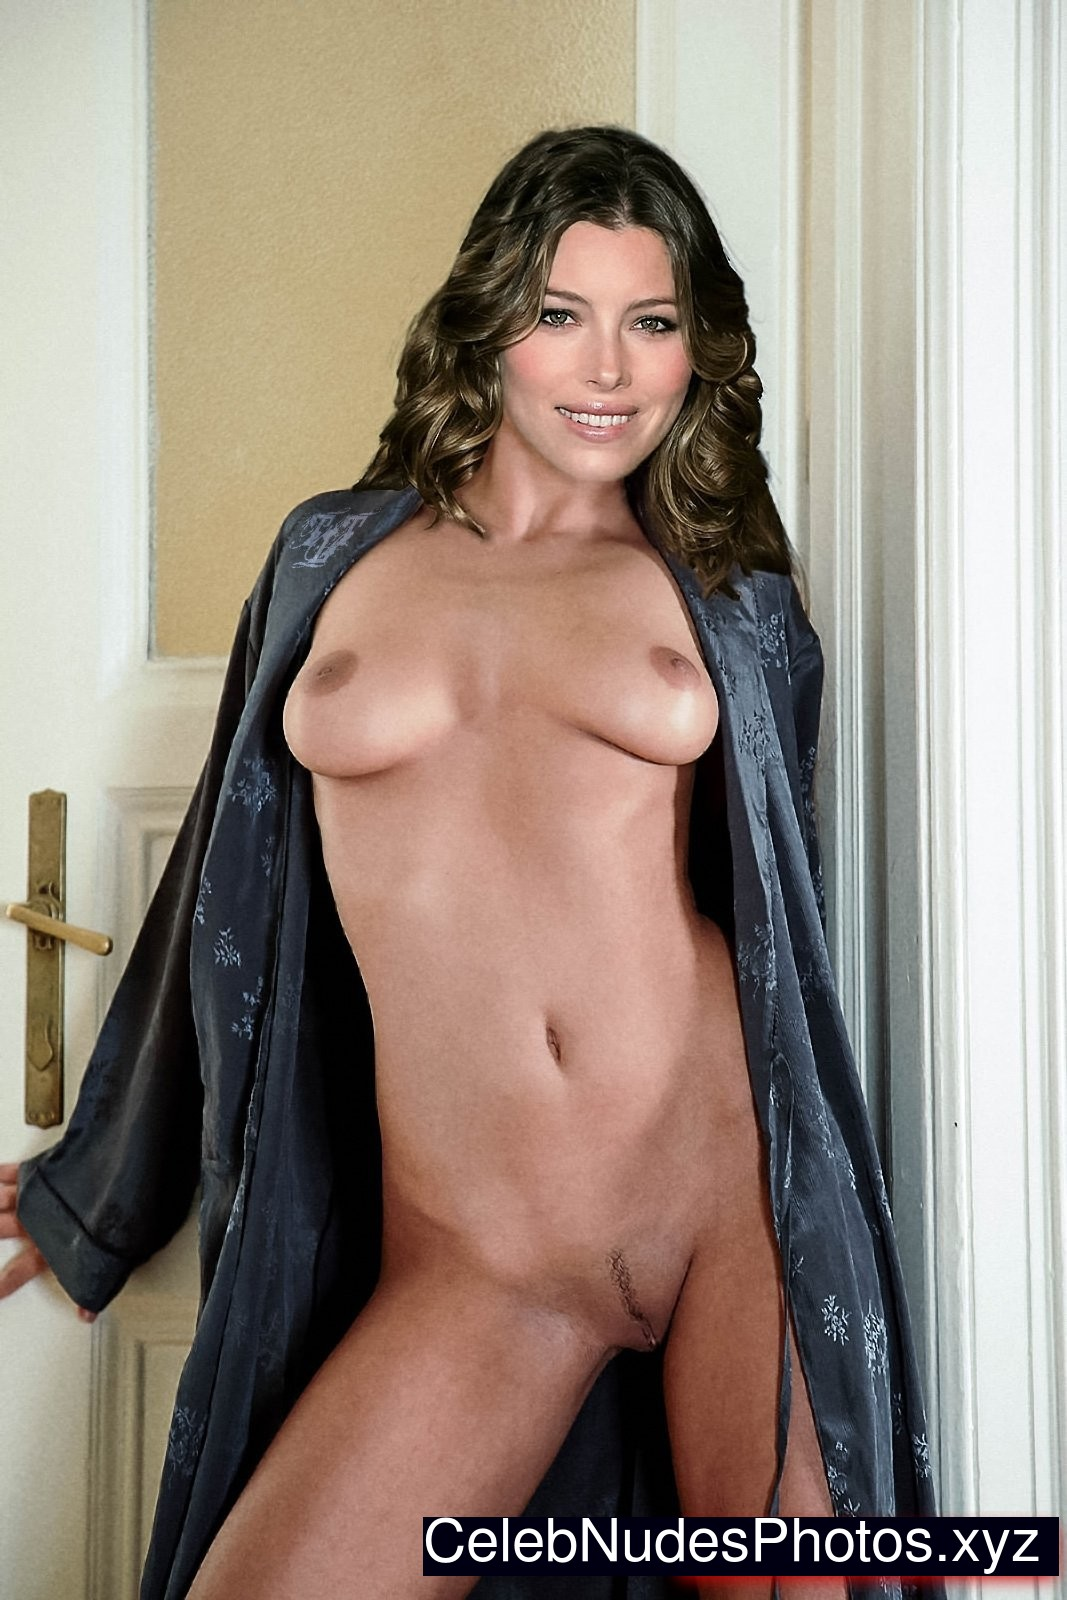 Tenere really jessica biel porn attractively!!